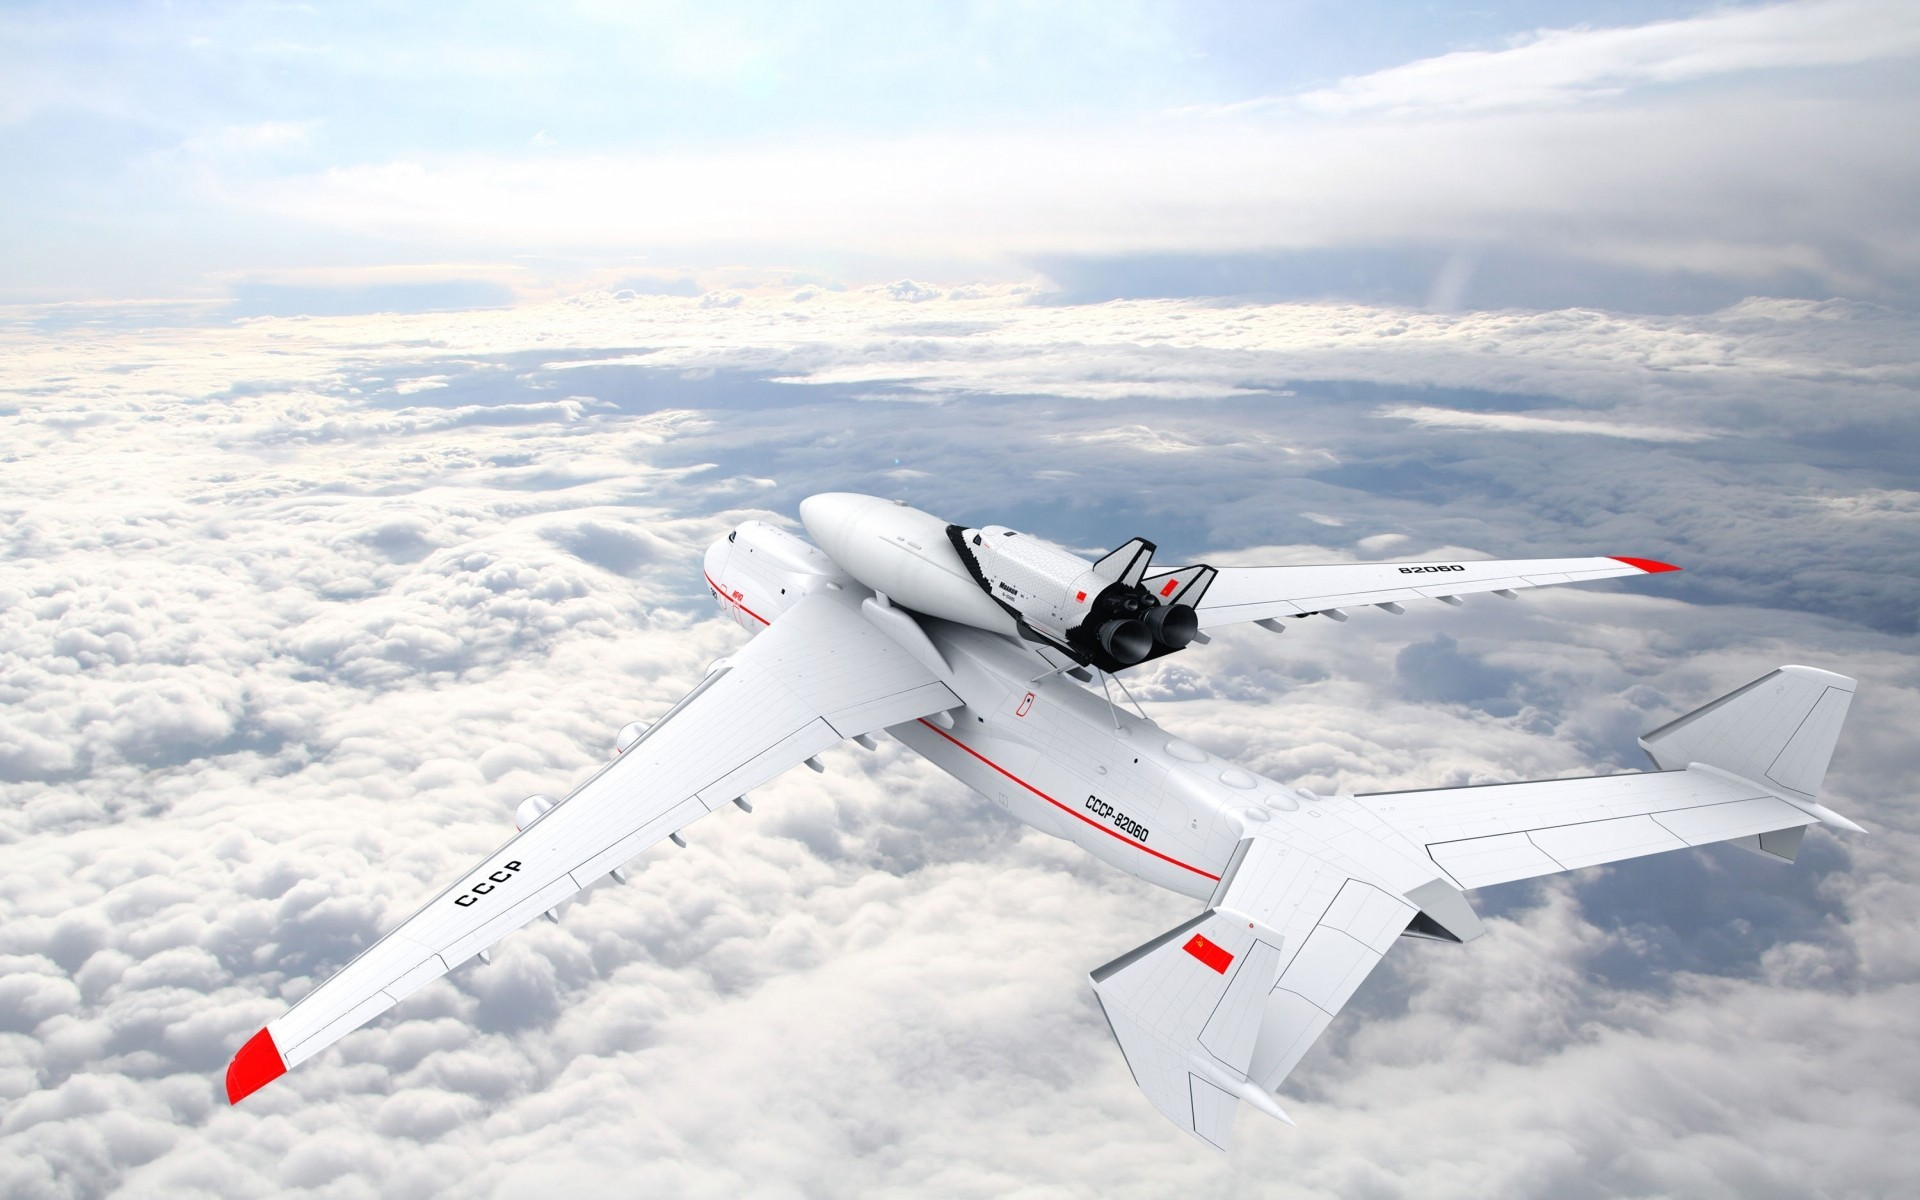 Aircraft USSR drone HD Wallpaper